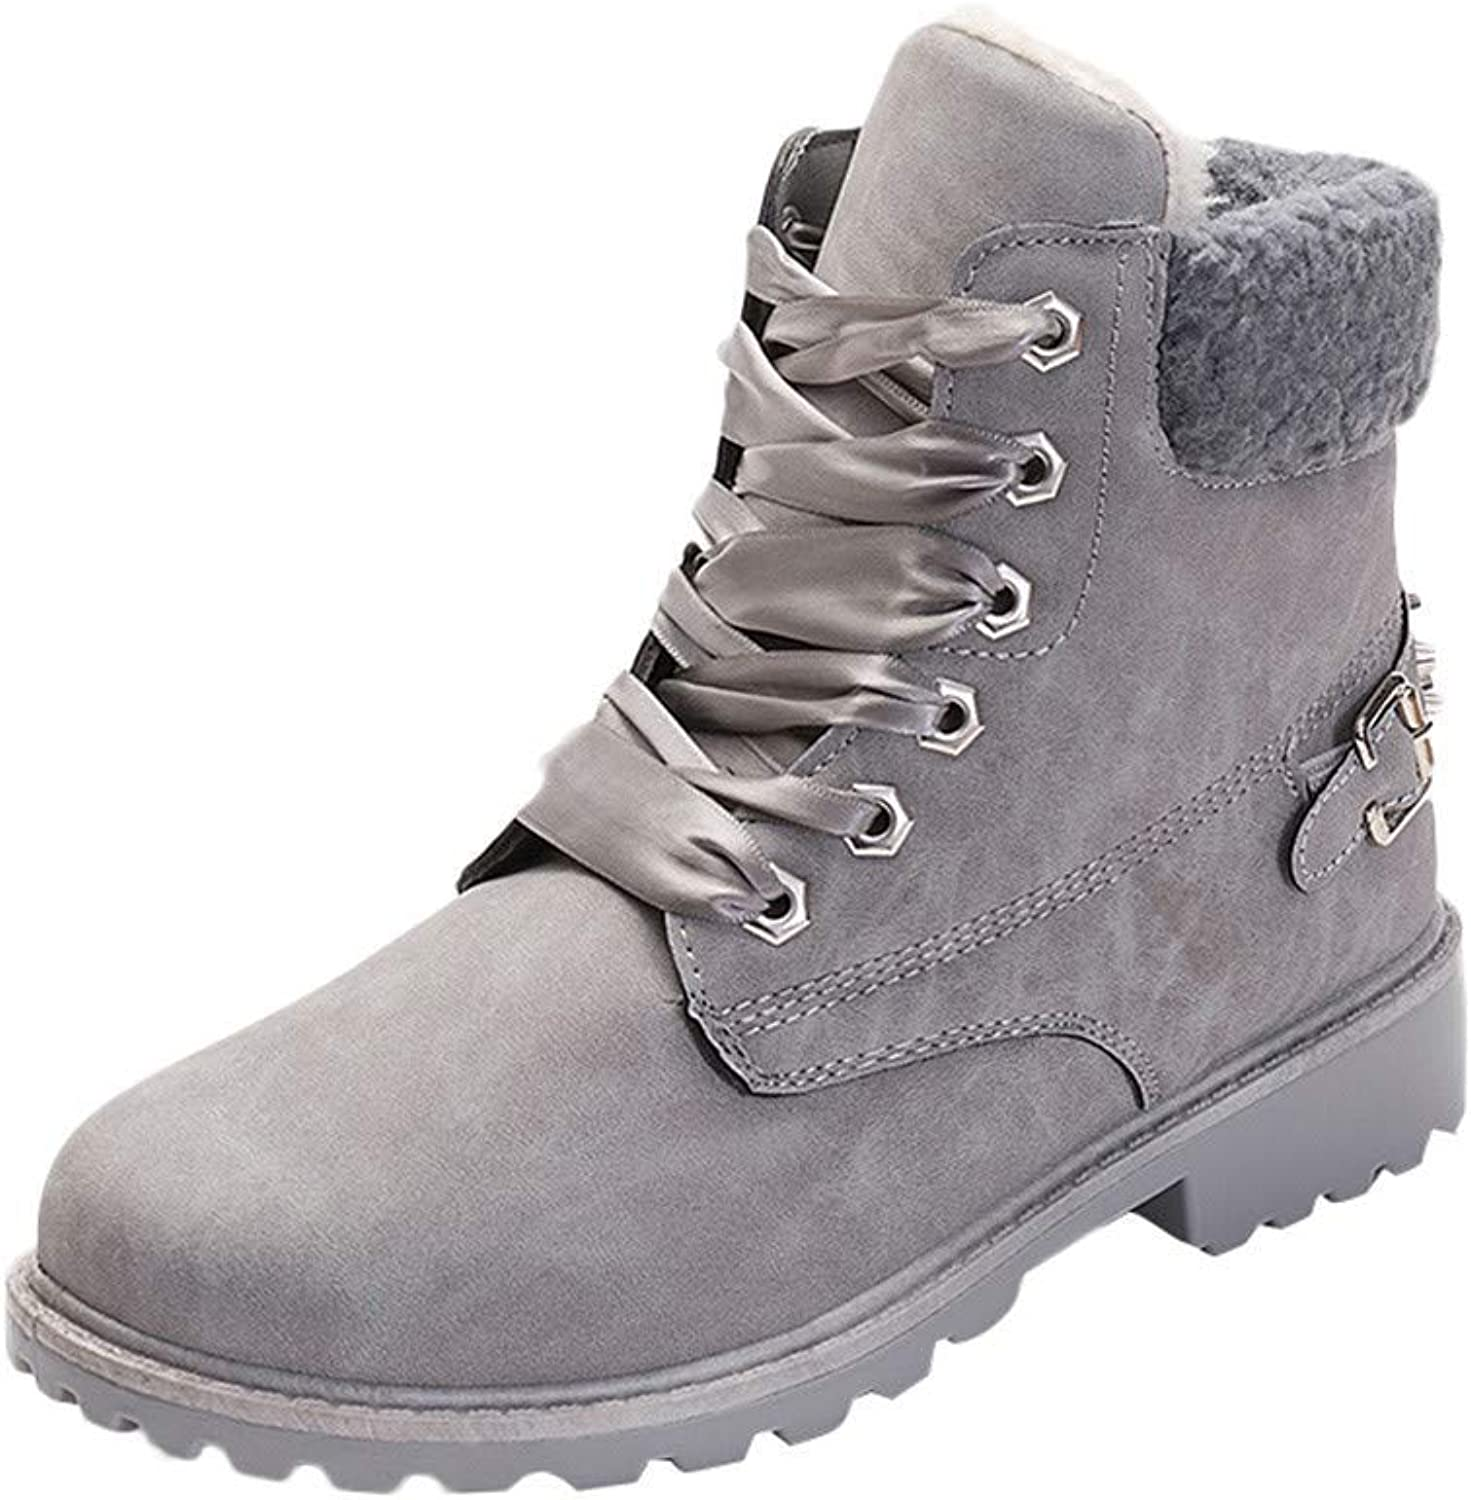 Women's Lace Up Snow Boots Fur Lined Suede Flat Short Boots